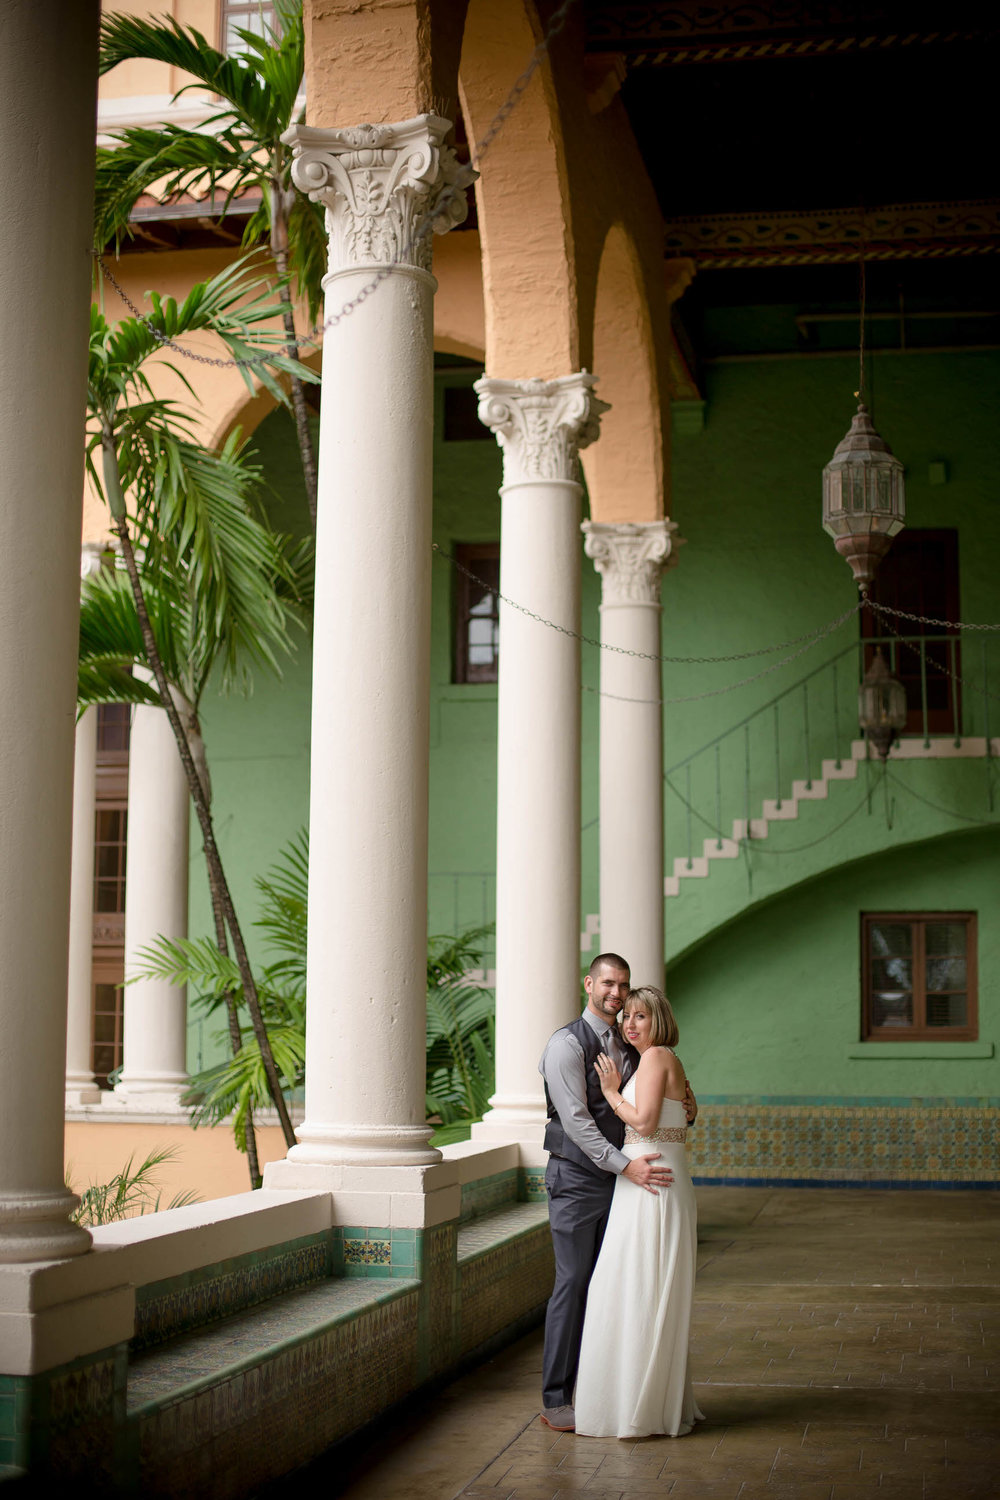 kissing bride and groom miami wedding photographer tiny house photo